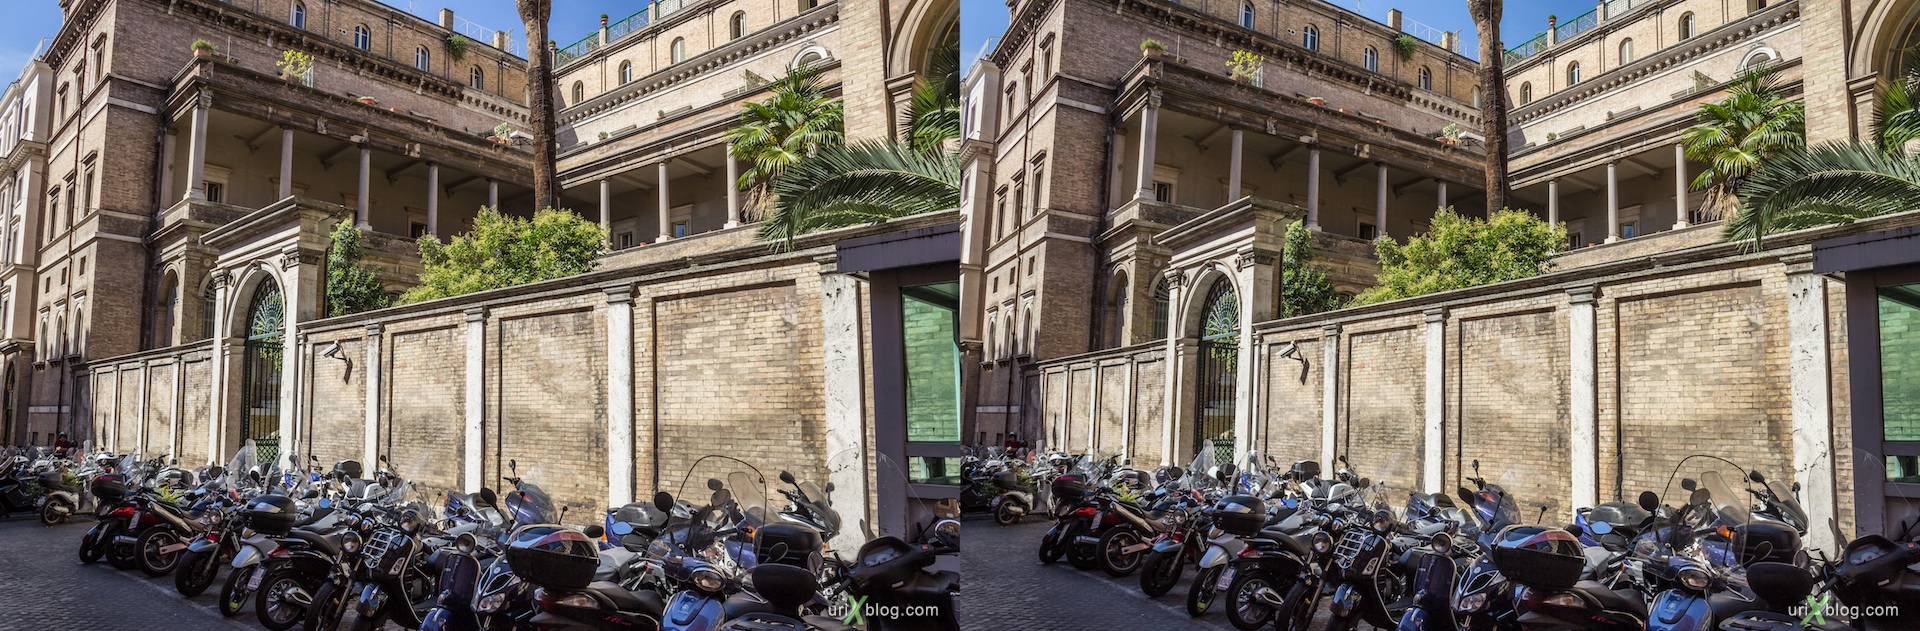 2012, wall, fence, Via di San Vitale street, Rome, Italy, Europe, 3D, stereo pair, cross-eyed, crossview, cross view stereo pair